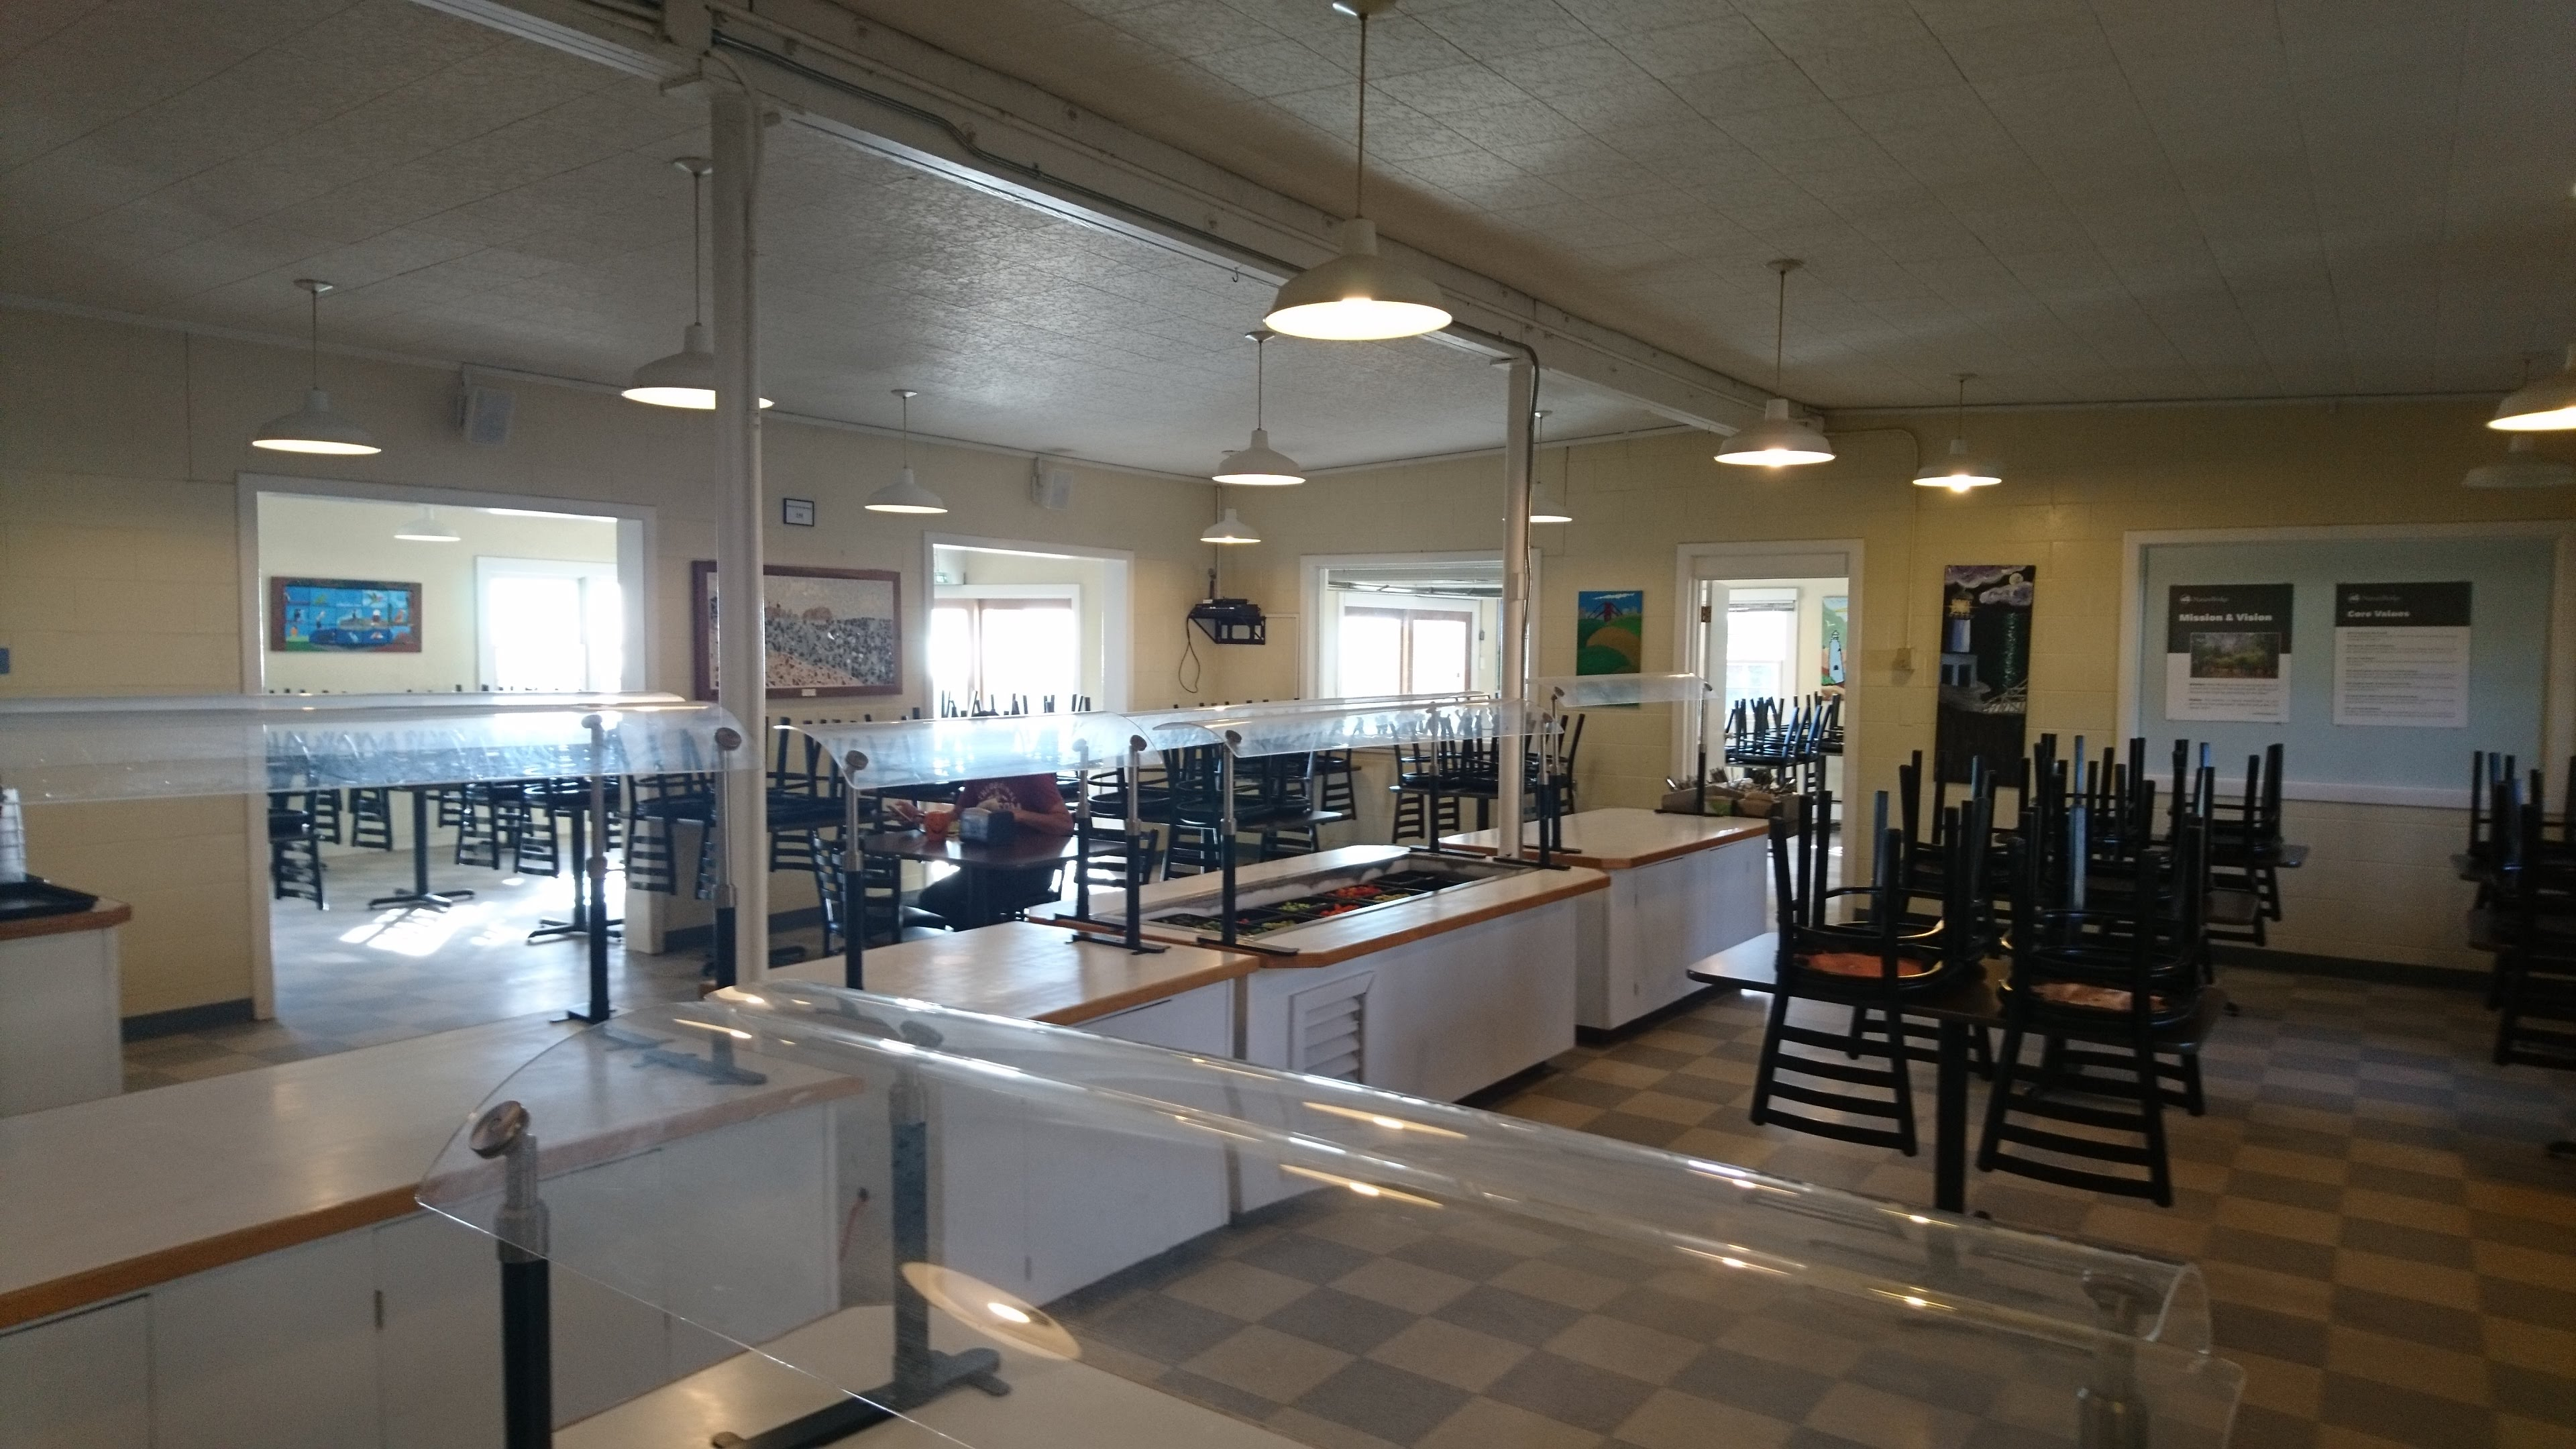 Photo of inside of dining hall. Buffet and several tables.